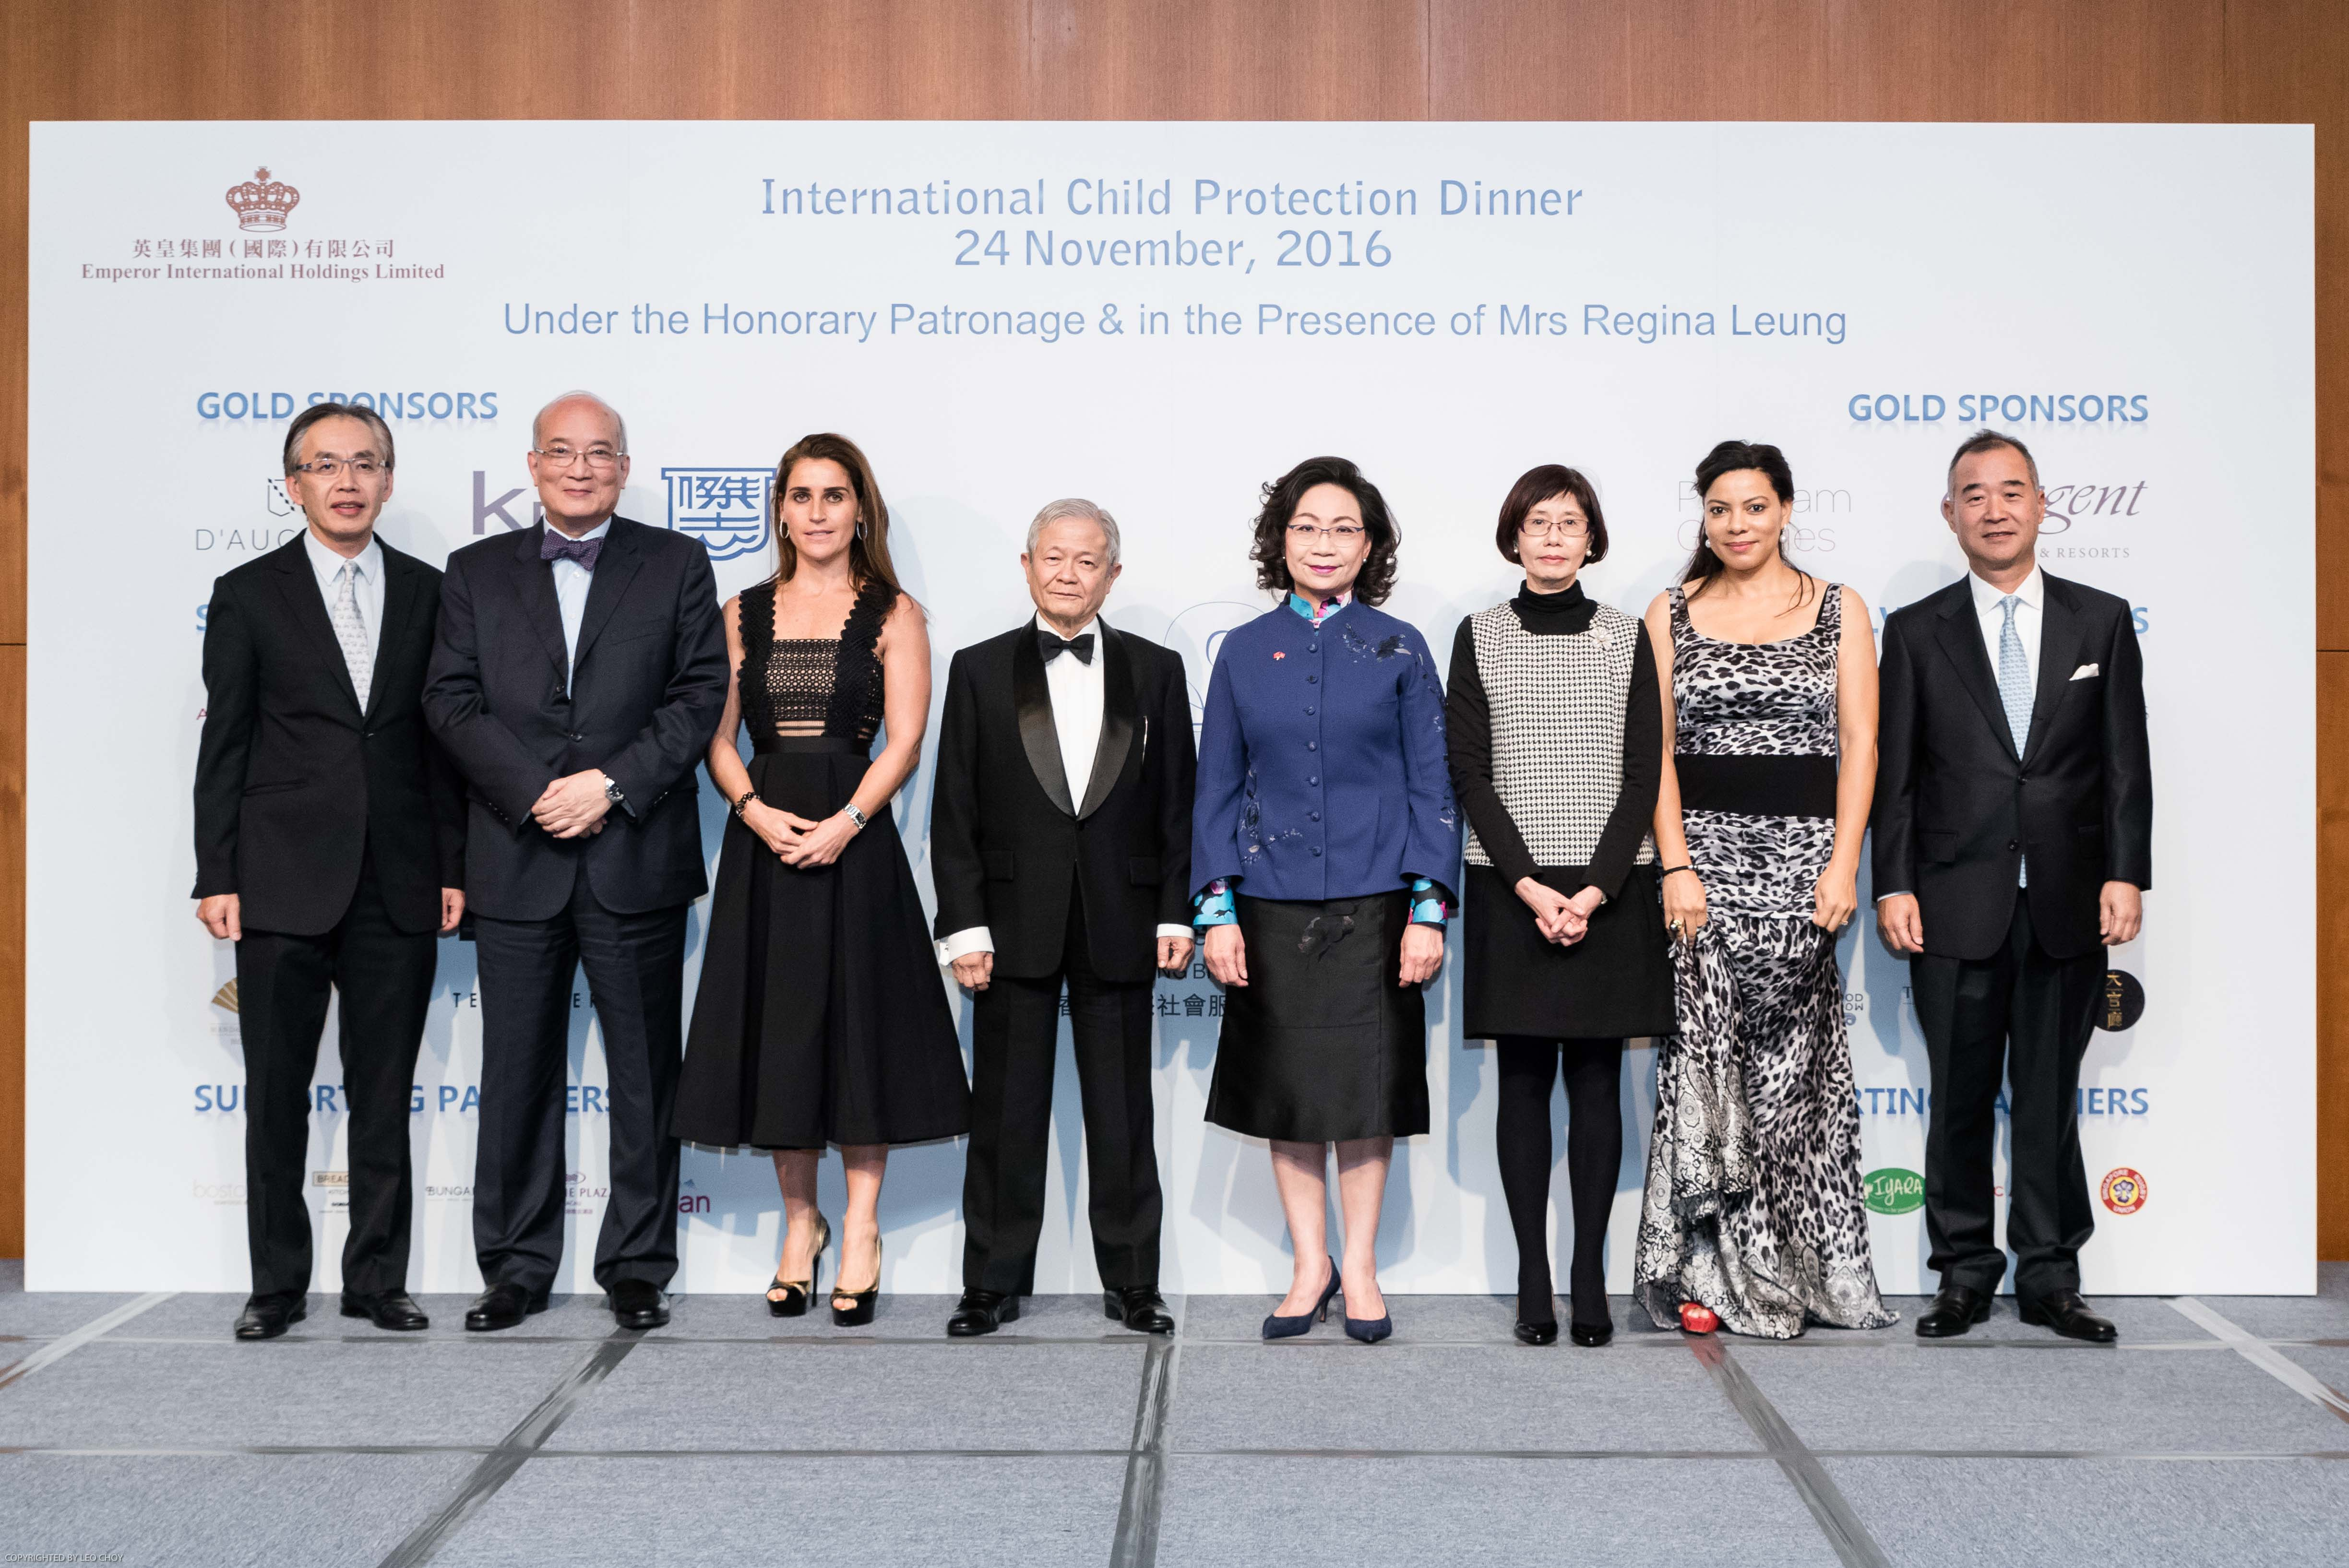 International Child Protection Dinner 2016 Raised $1.4 Million for ISS-HK's Intercountry Services